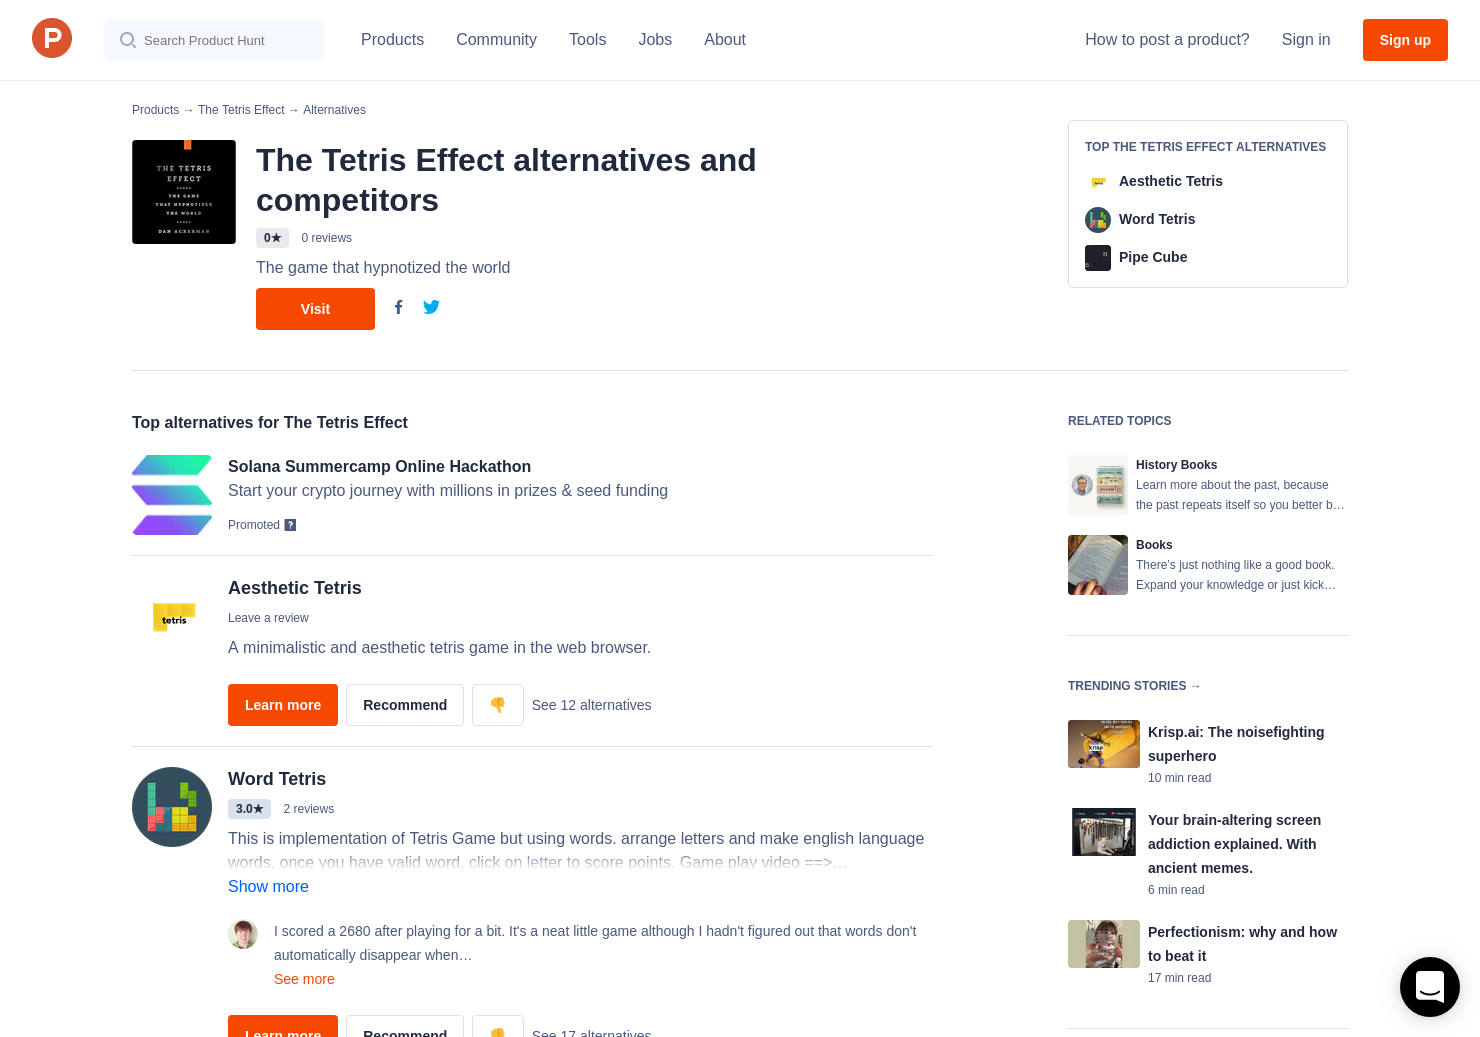 3 Alternatives to The Tetris Effect | Product Hunt